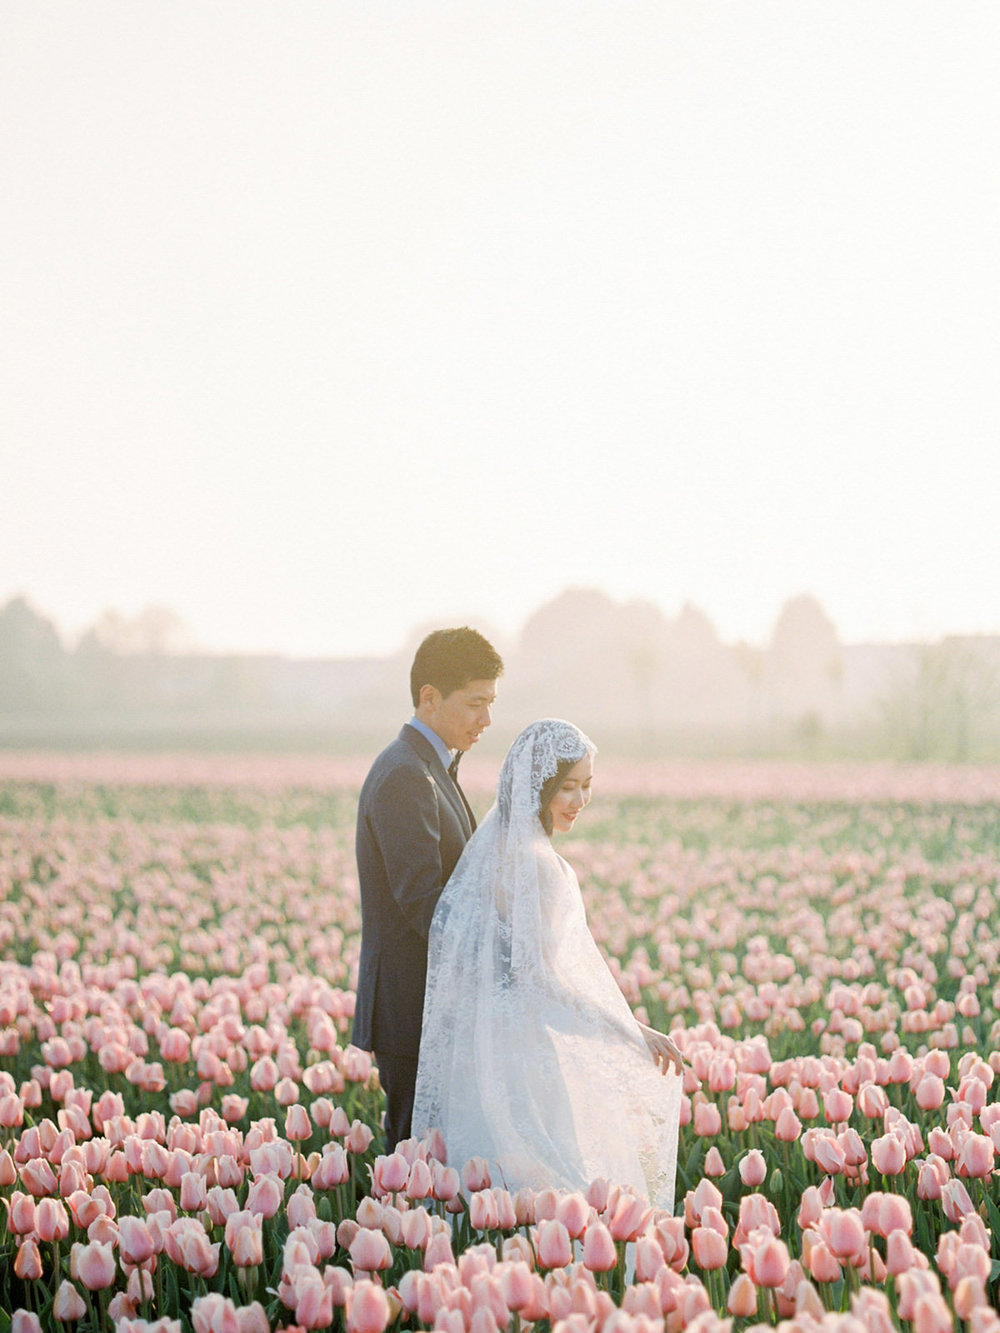 Mingruo Prewedding by CHYMO & MORE Photography (http://chymomore